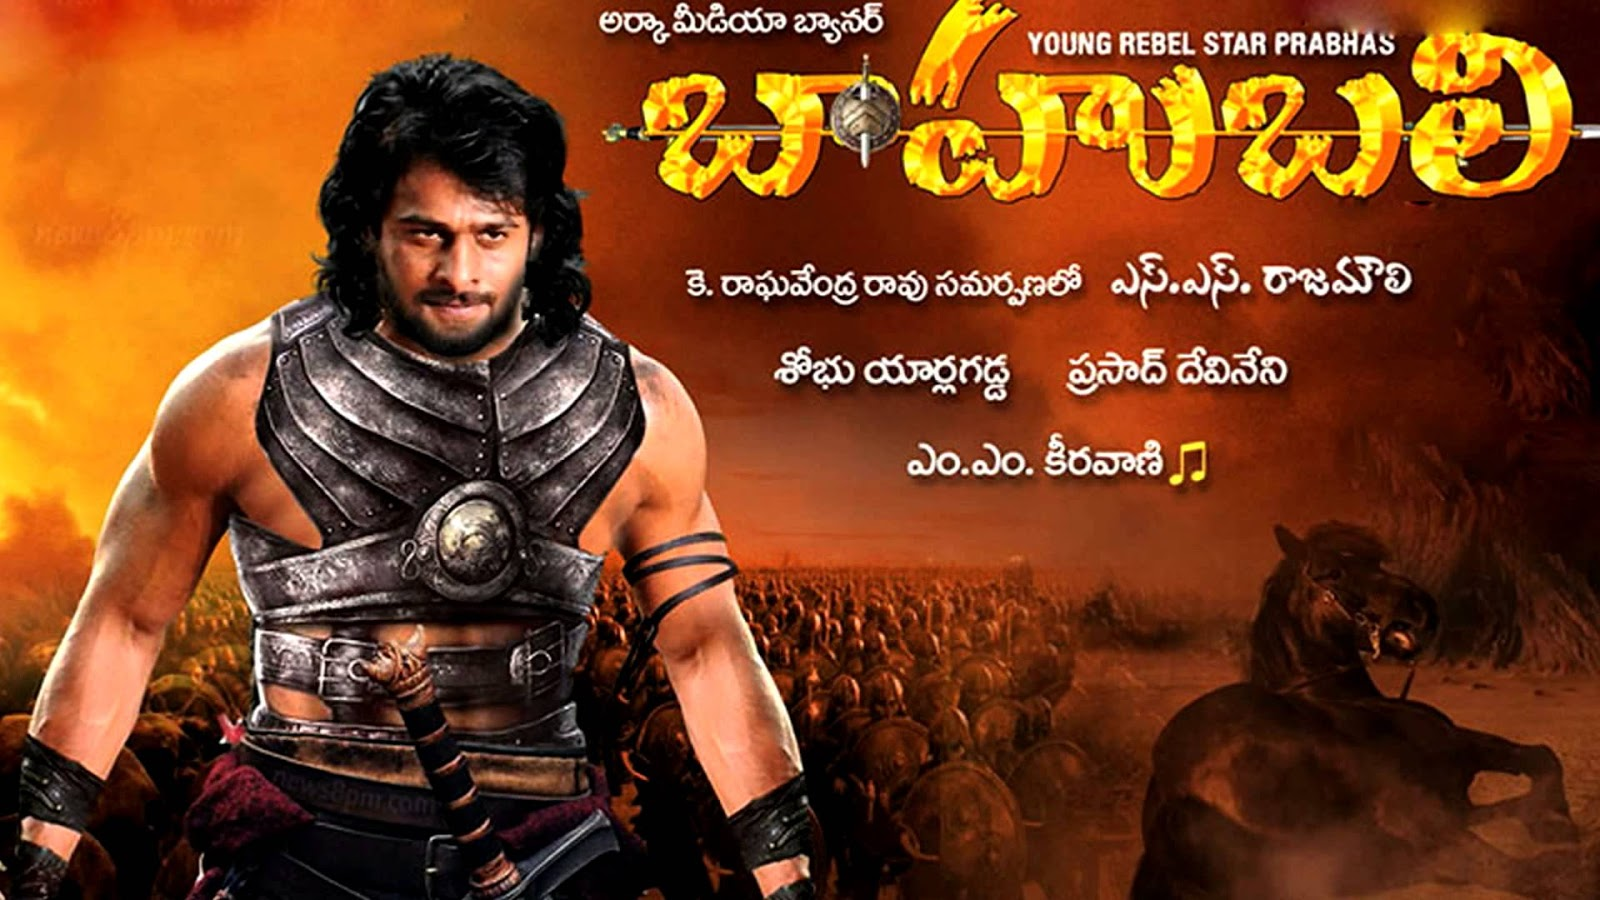 bahubali 2 tamil video songs download starmusiq